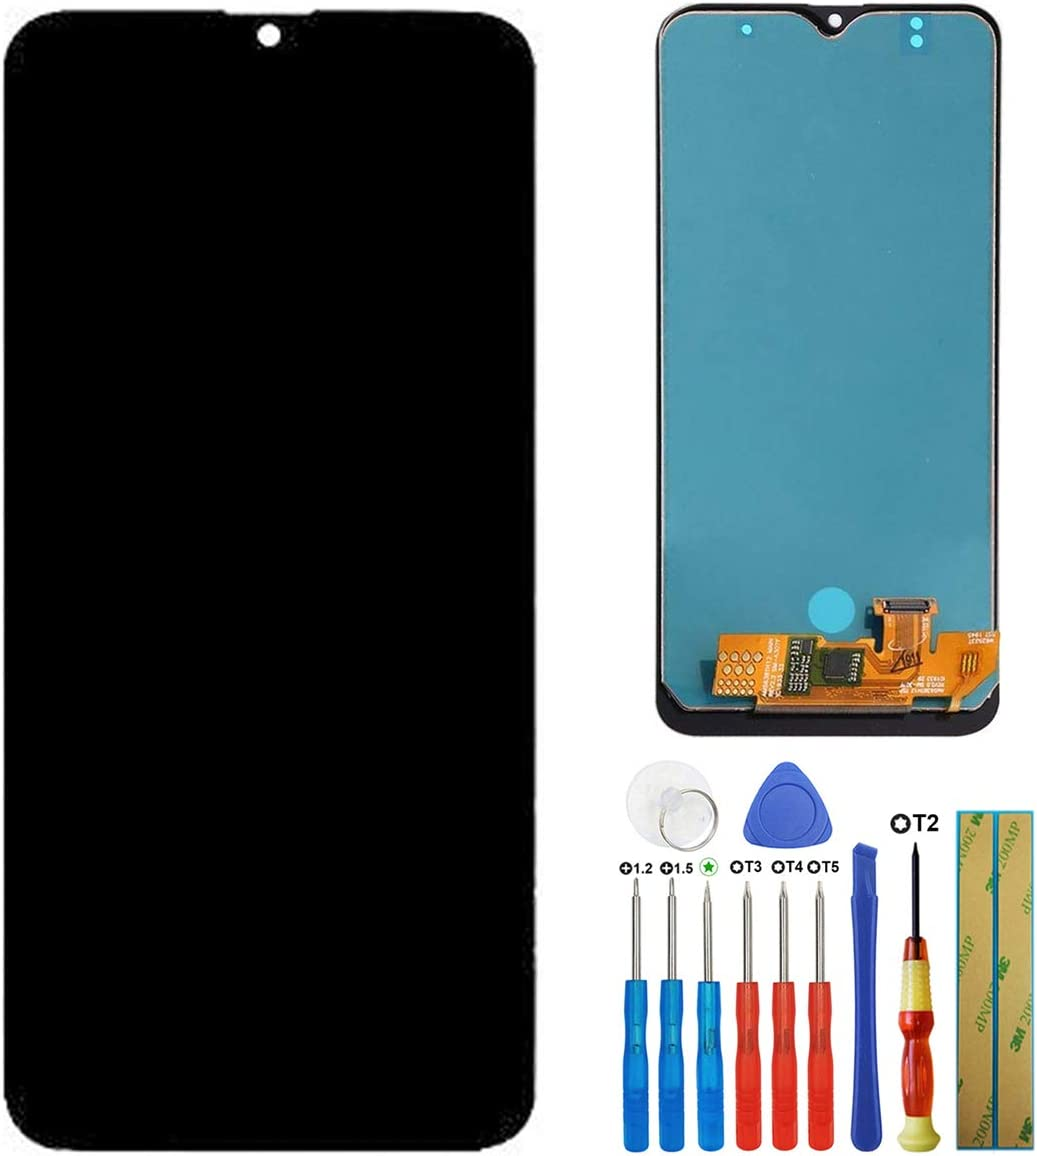 New LCD Display Compatible with SM- latest Galaxy Samsung A30S Max 57% OFF SM-A307F